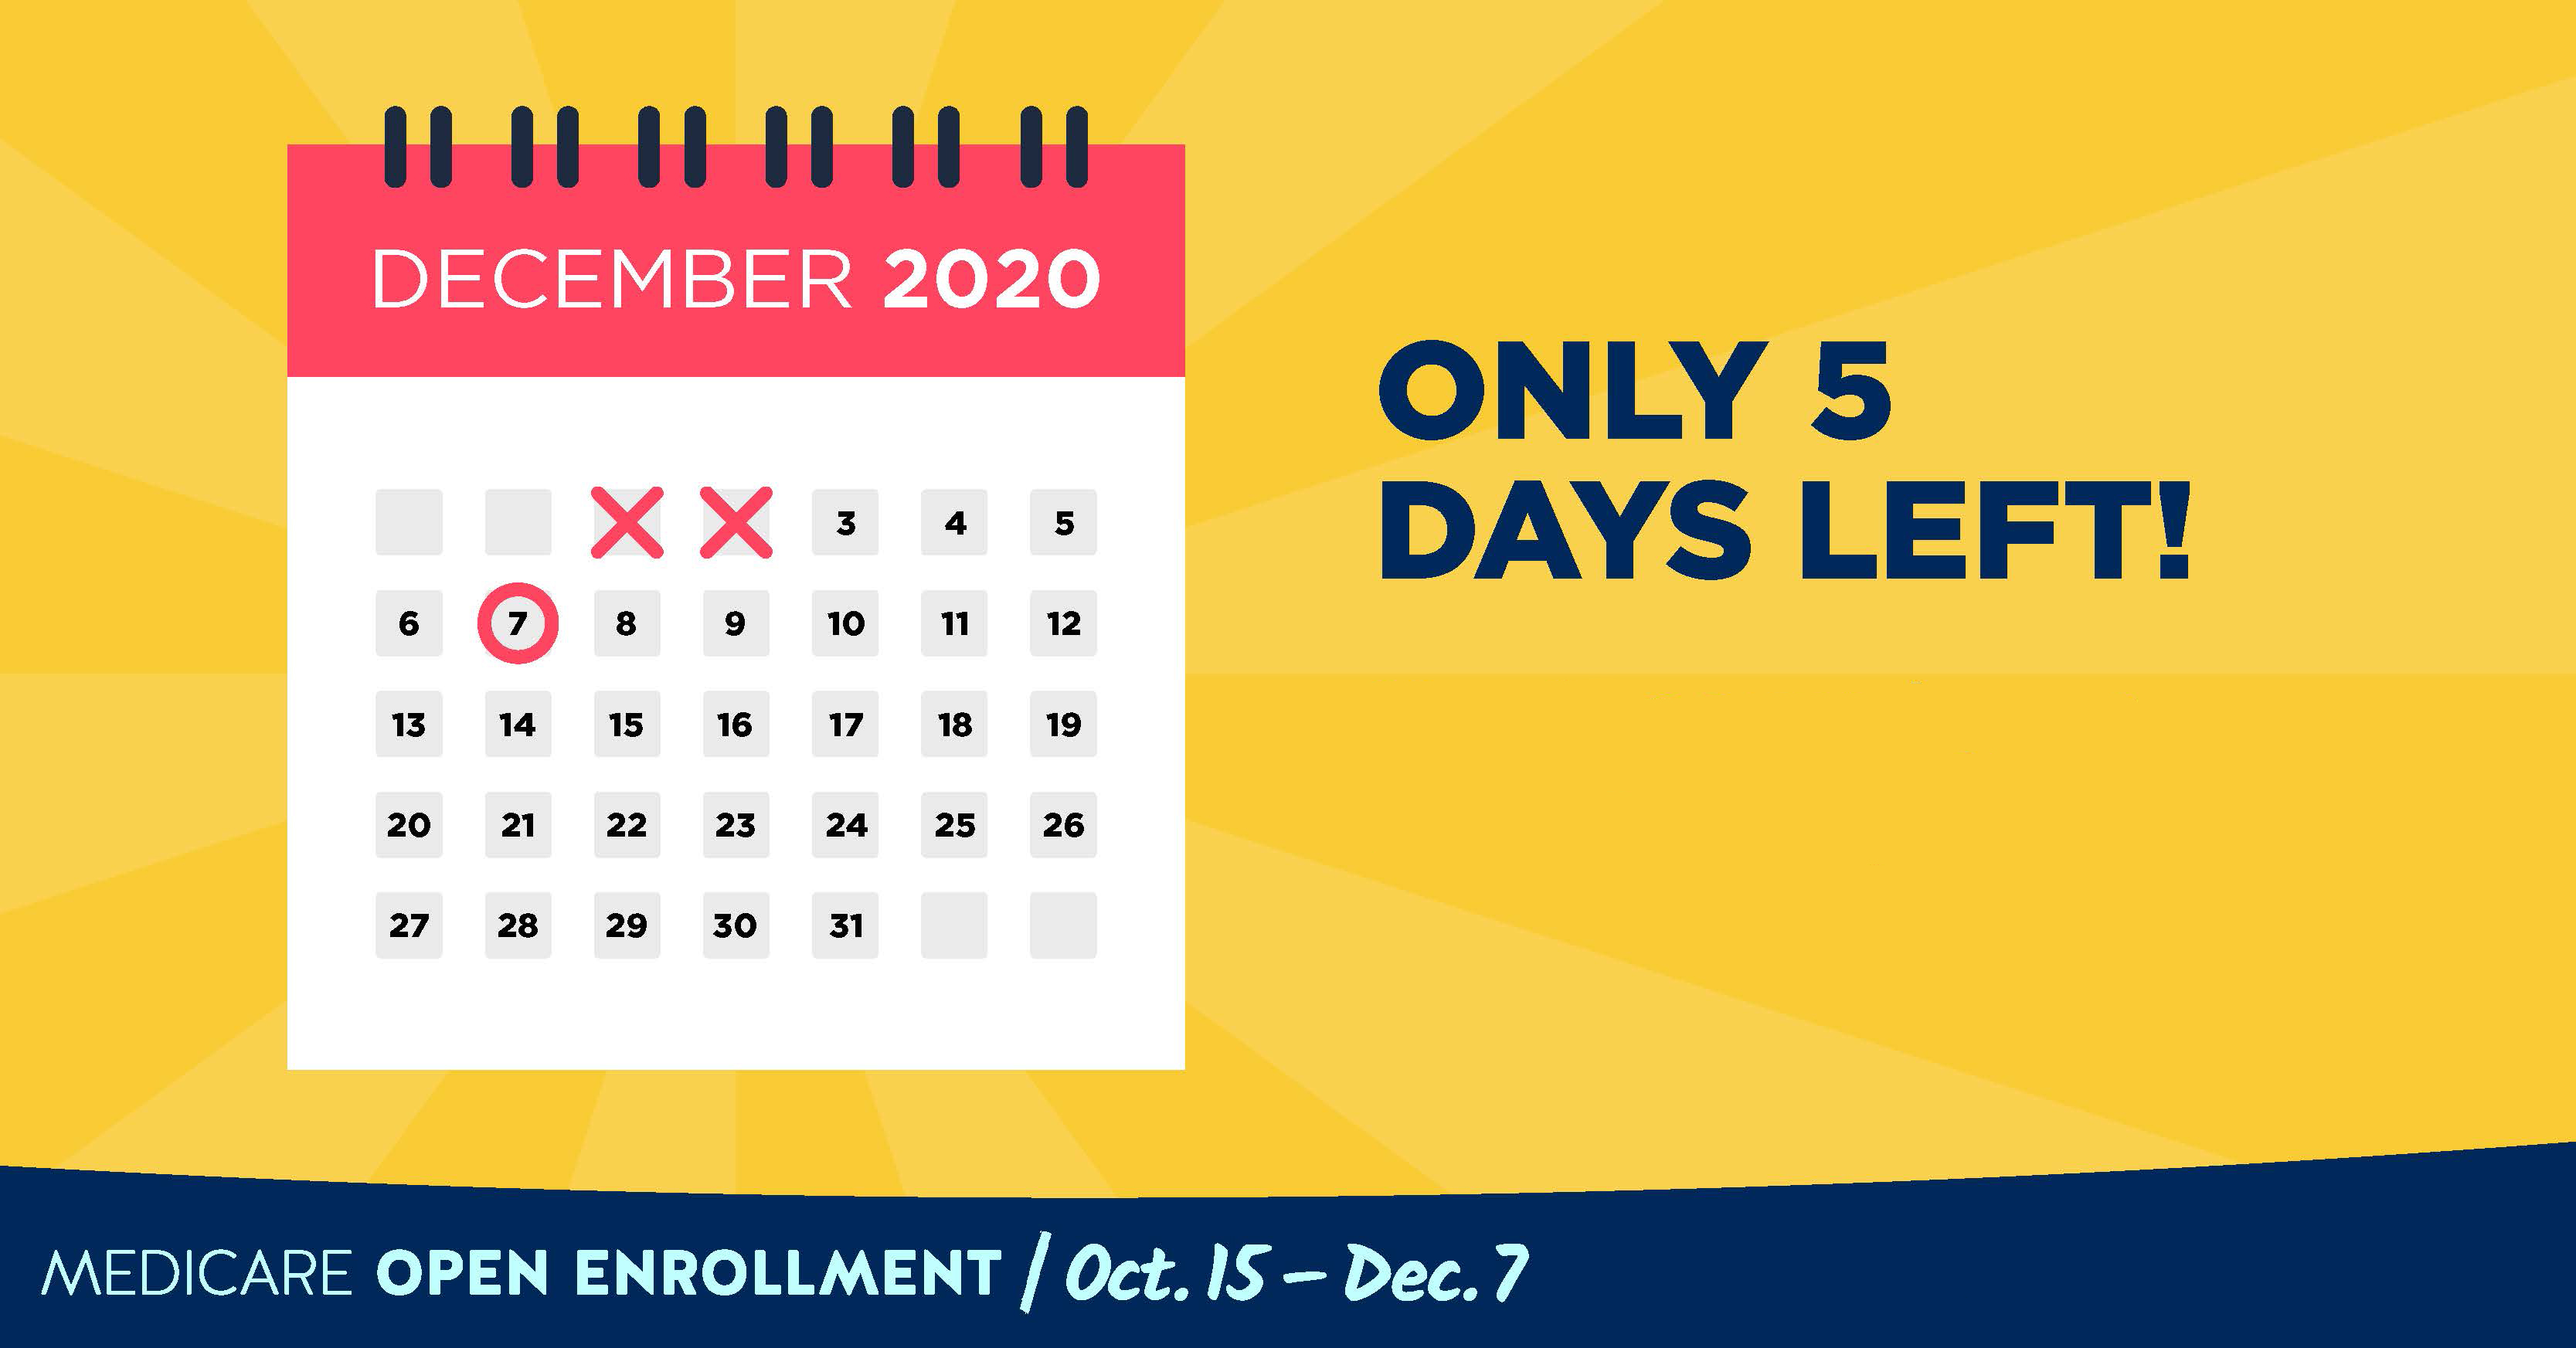 Shop Illinois Medicare Plans Before December 7th